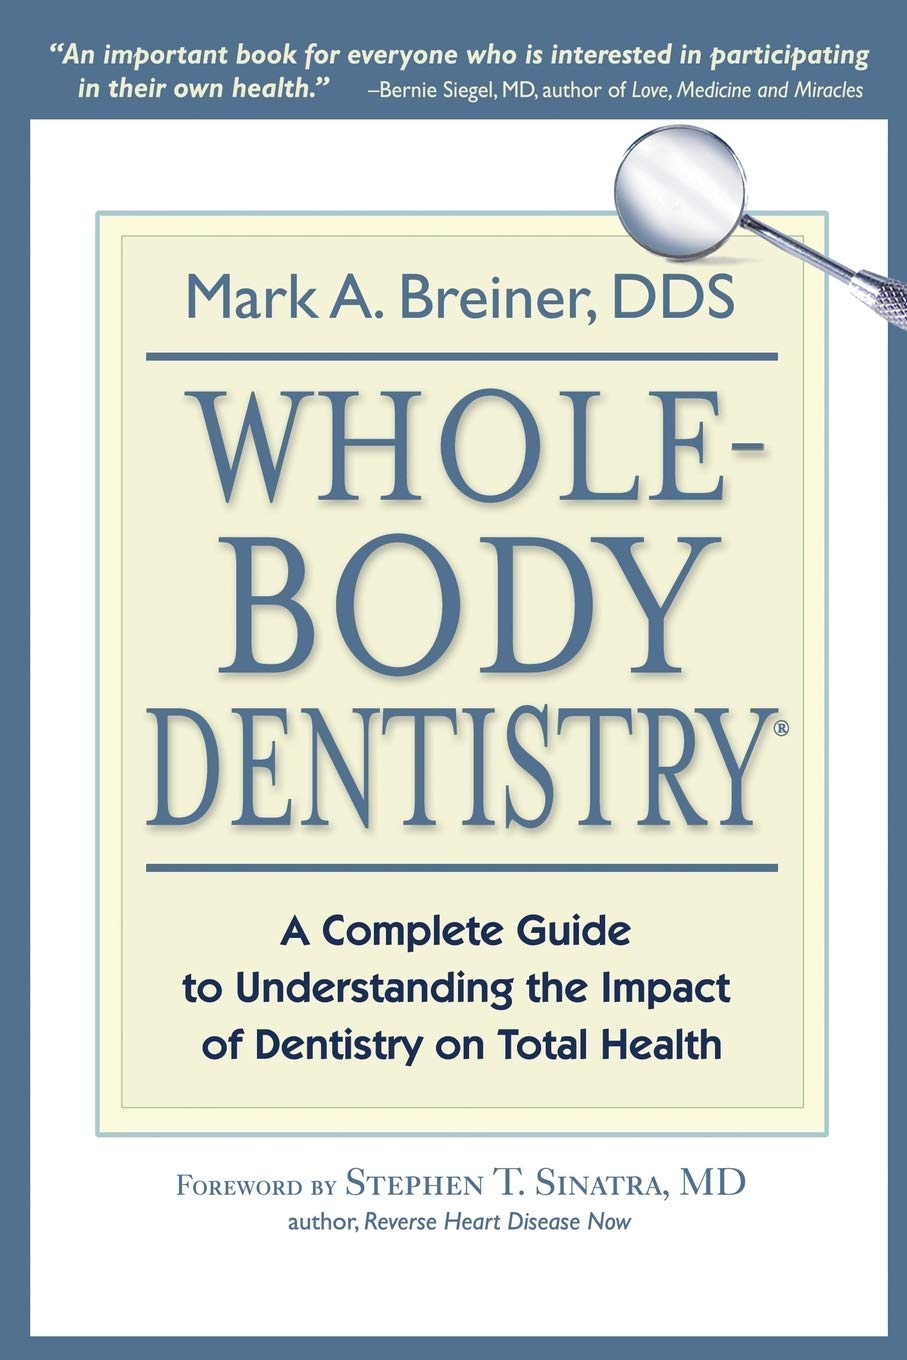 Discover the Missing Piece to Better Health Whole Body Dentistry